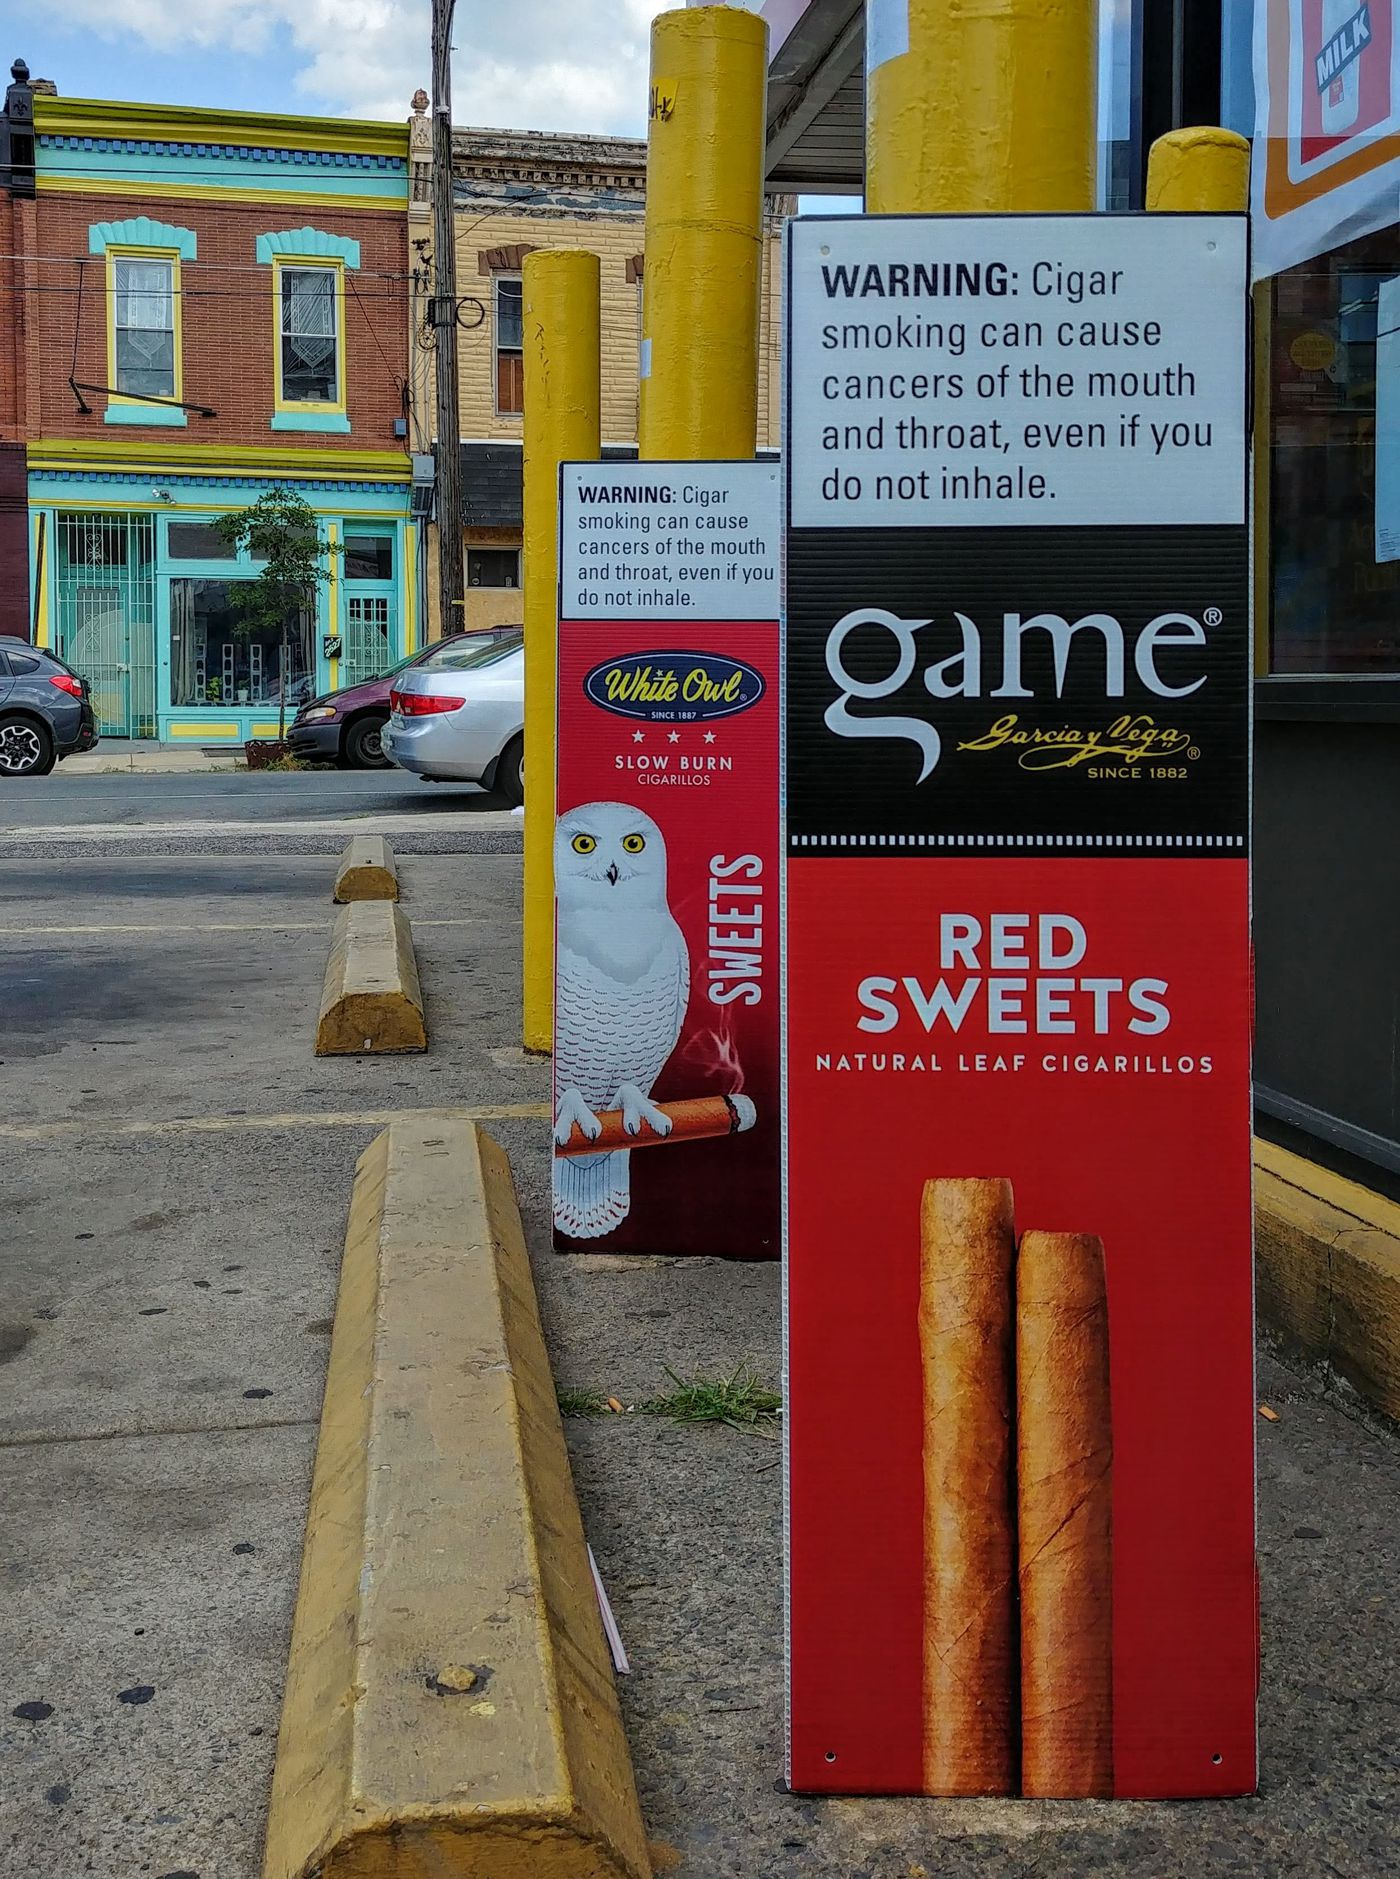 Youth smoking trends in Philadelphia are changing  Now the